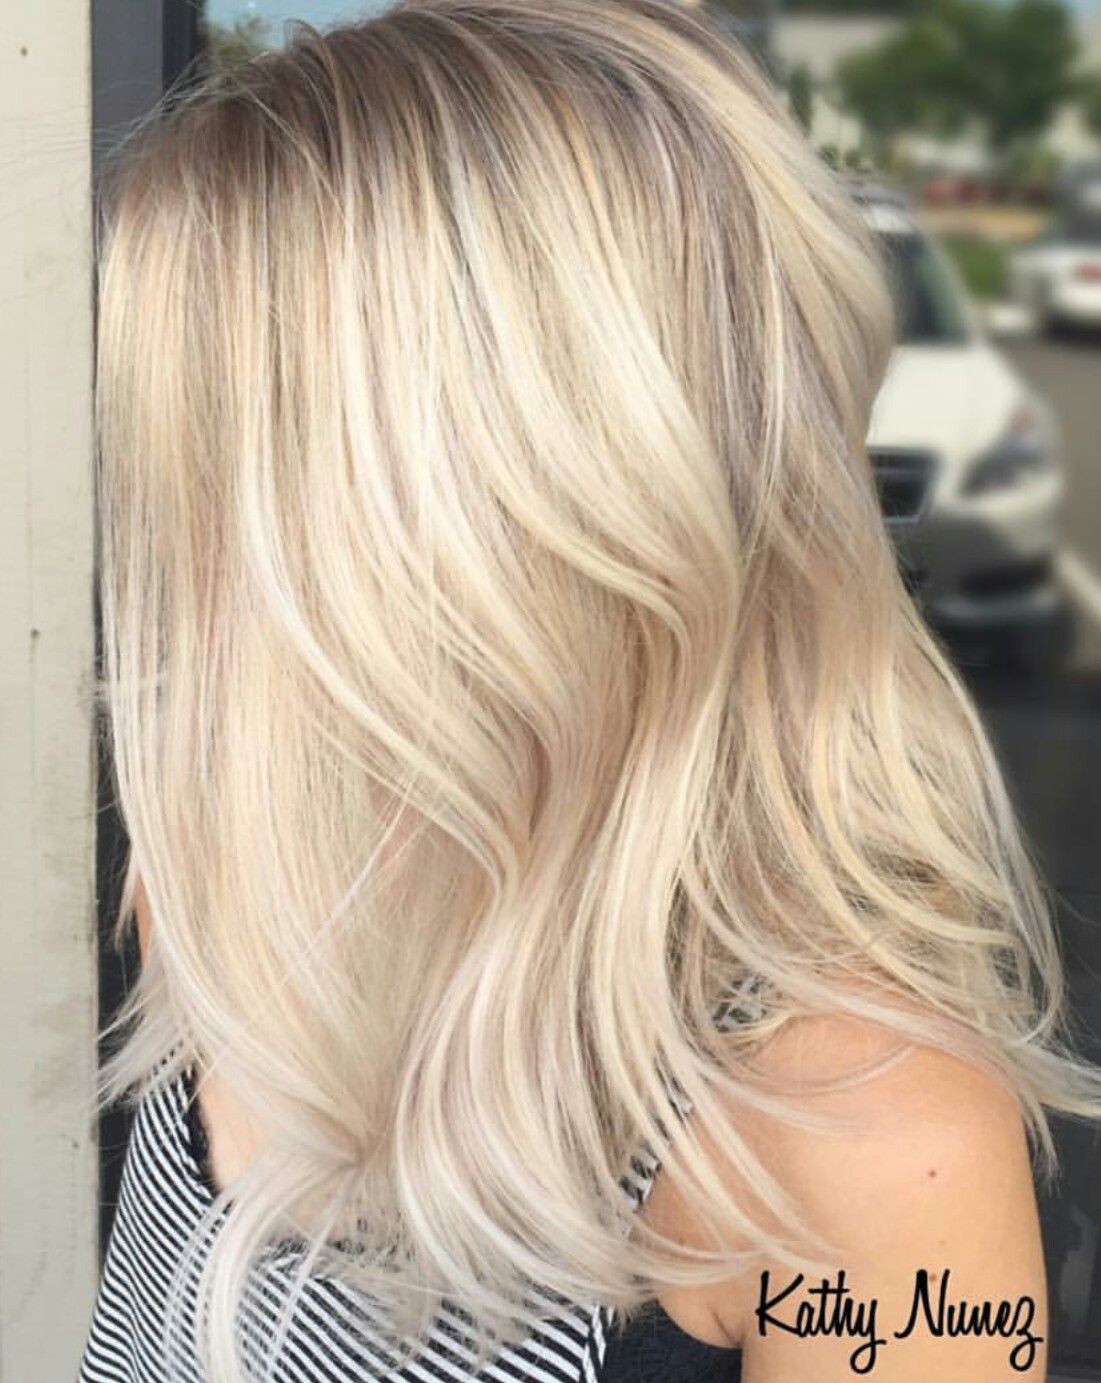 Pin by kayla austin on hair pinterest hair coloring blondes and